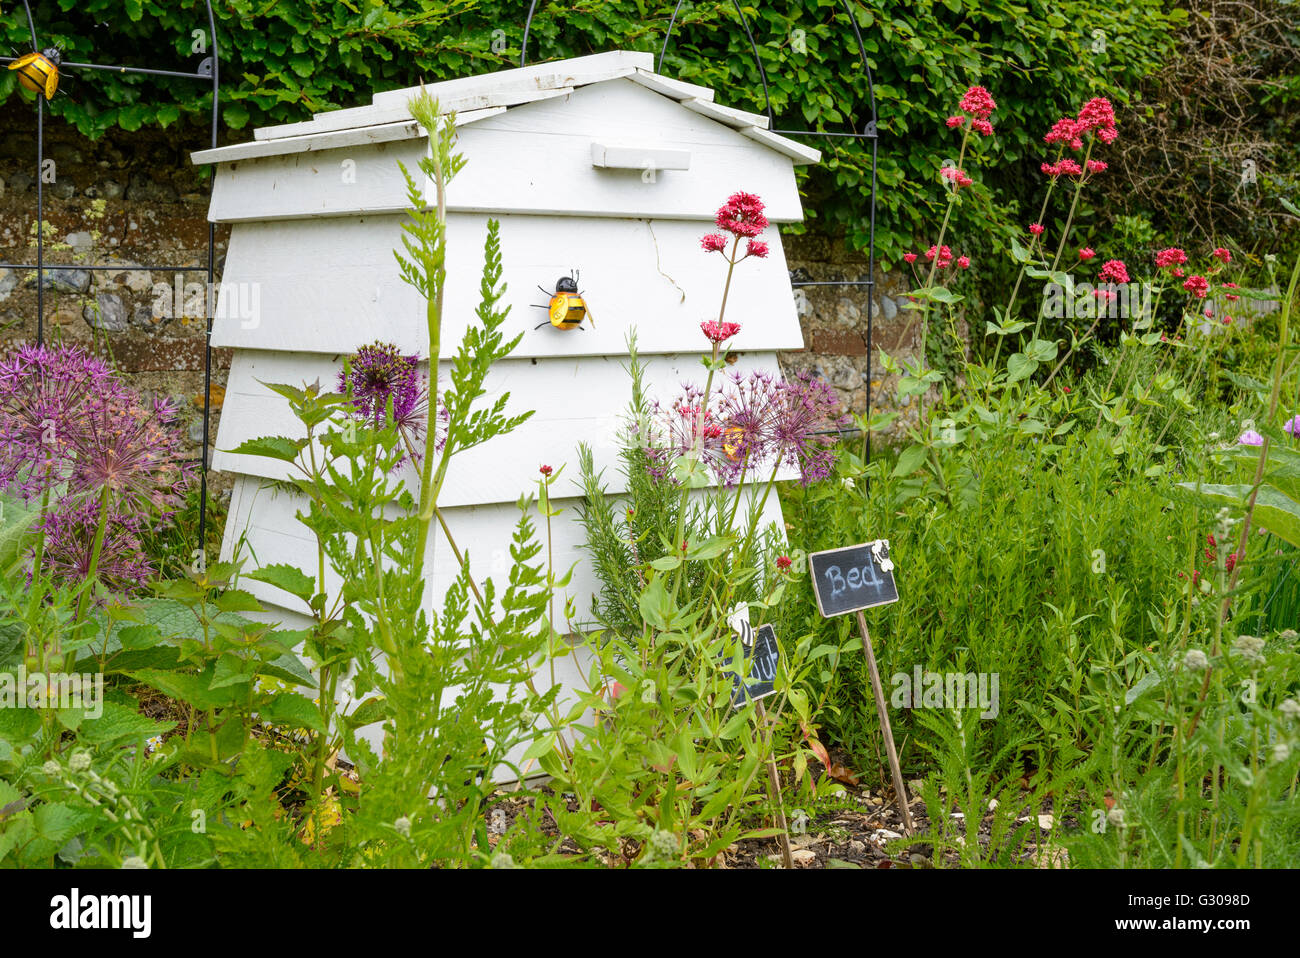 beehive stockfotos beehive bilder alamy. Black Bedroom Furniture Sets. Home Design Ideas